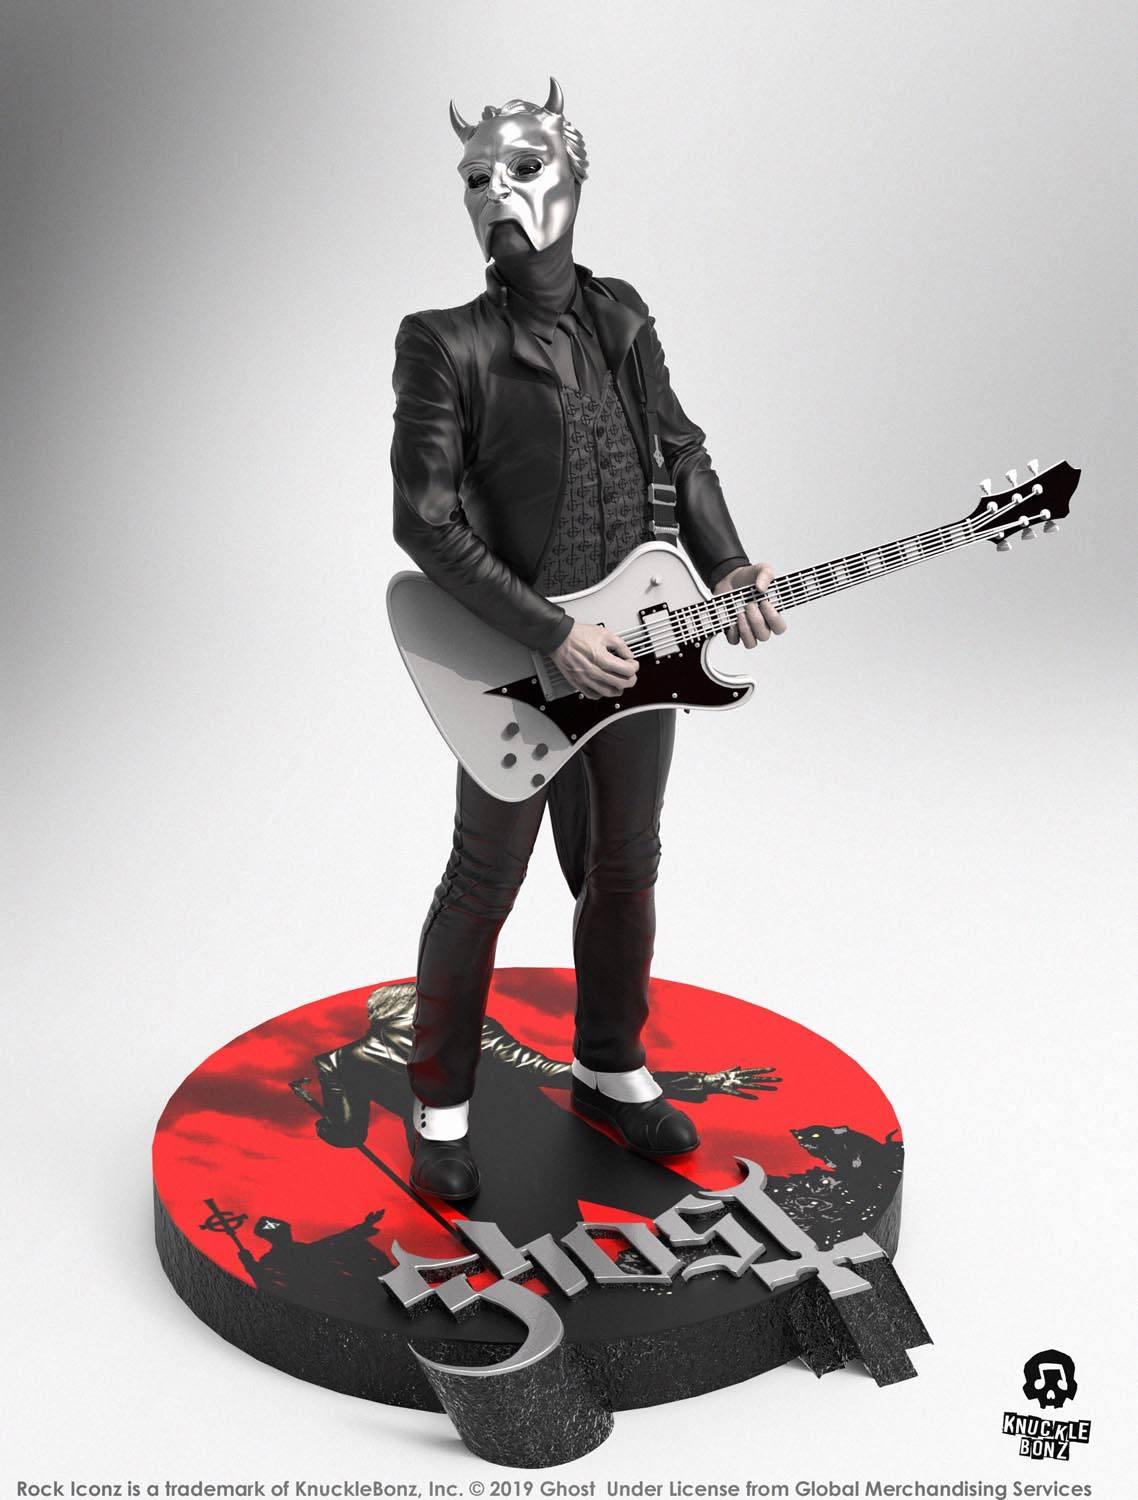 Ghost Rock Iconz Statue Nameless Ghoul (White Guitar) Limited Edition 22 cm